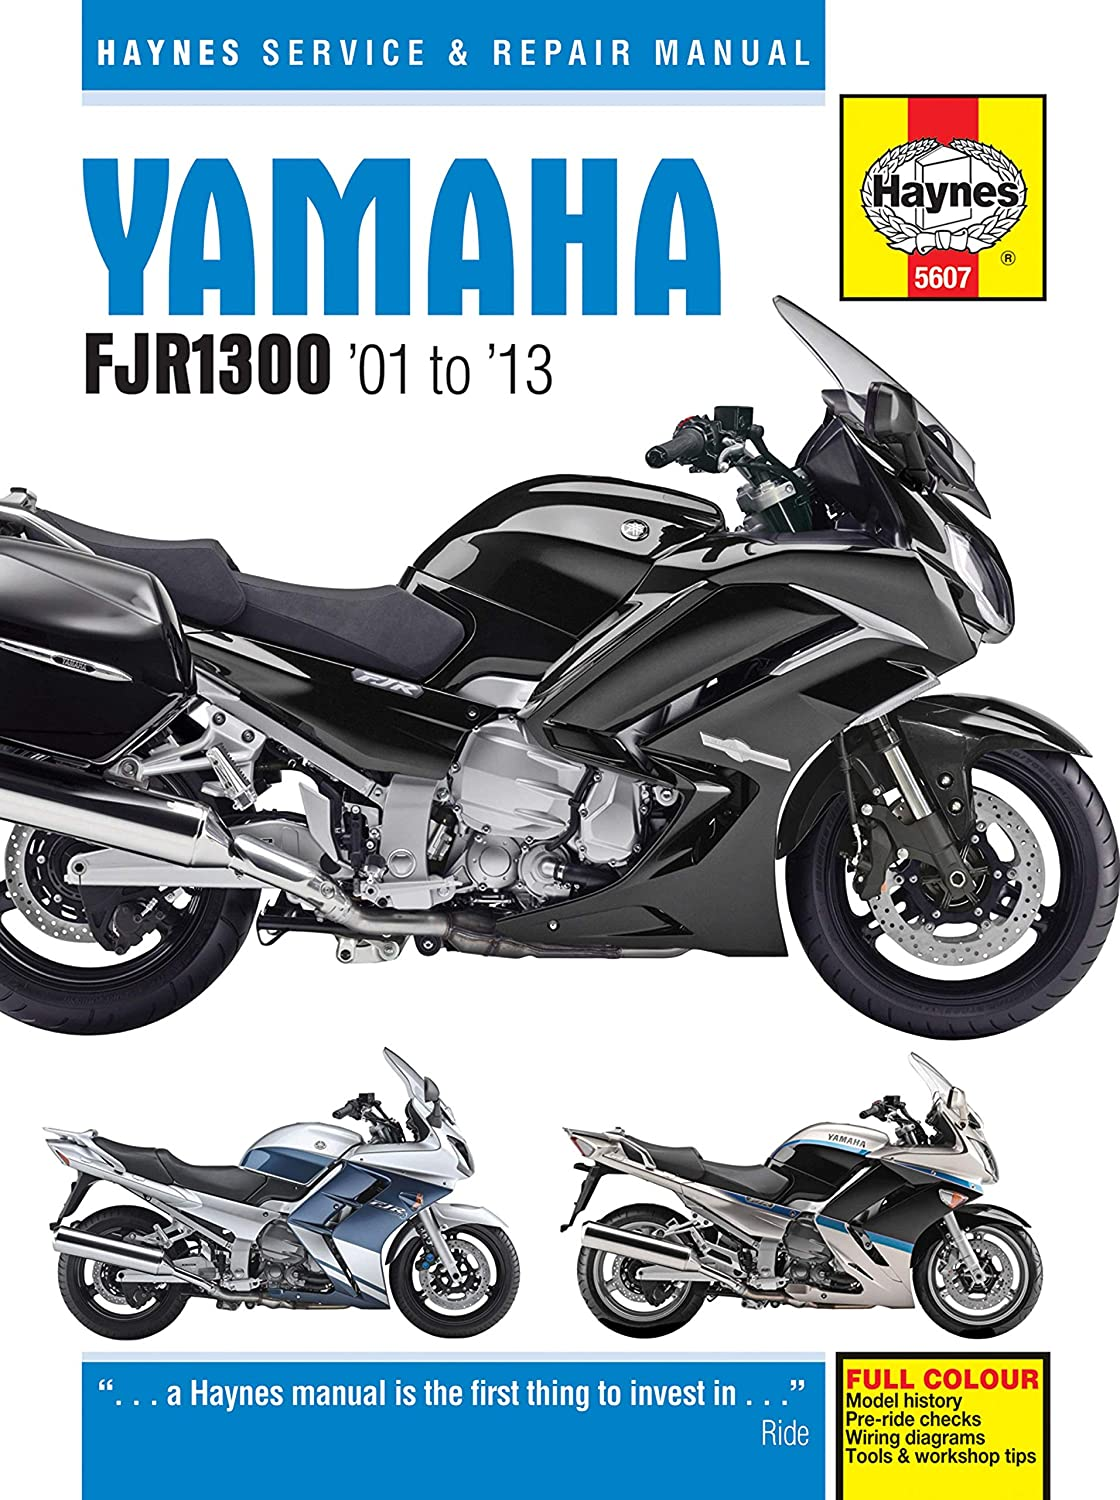 Yamaha Fjr1300 Haynes Manual 2001 2013 Car Motorbike Ih 606 Wiring Diagram